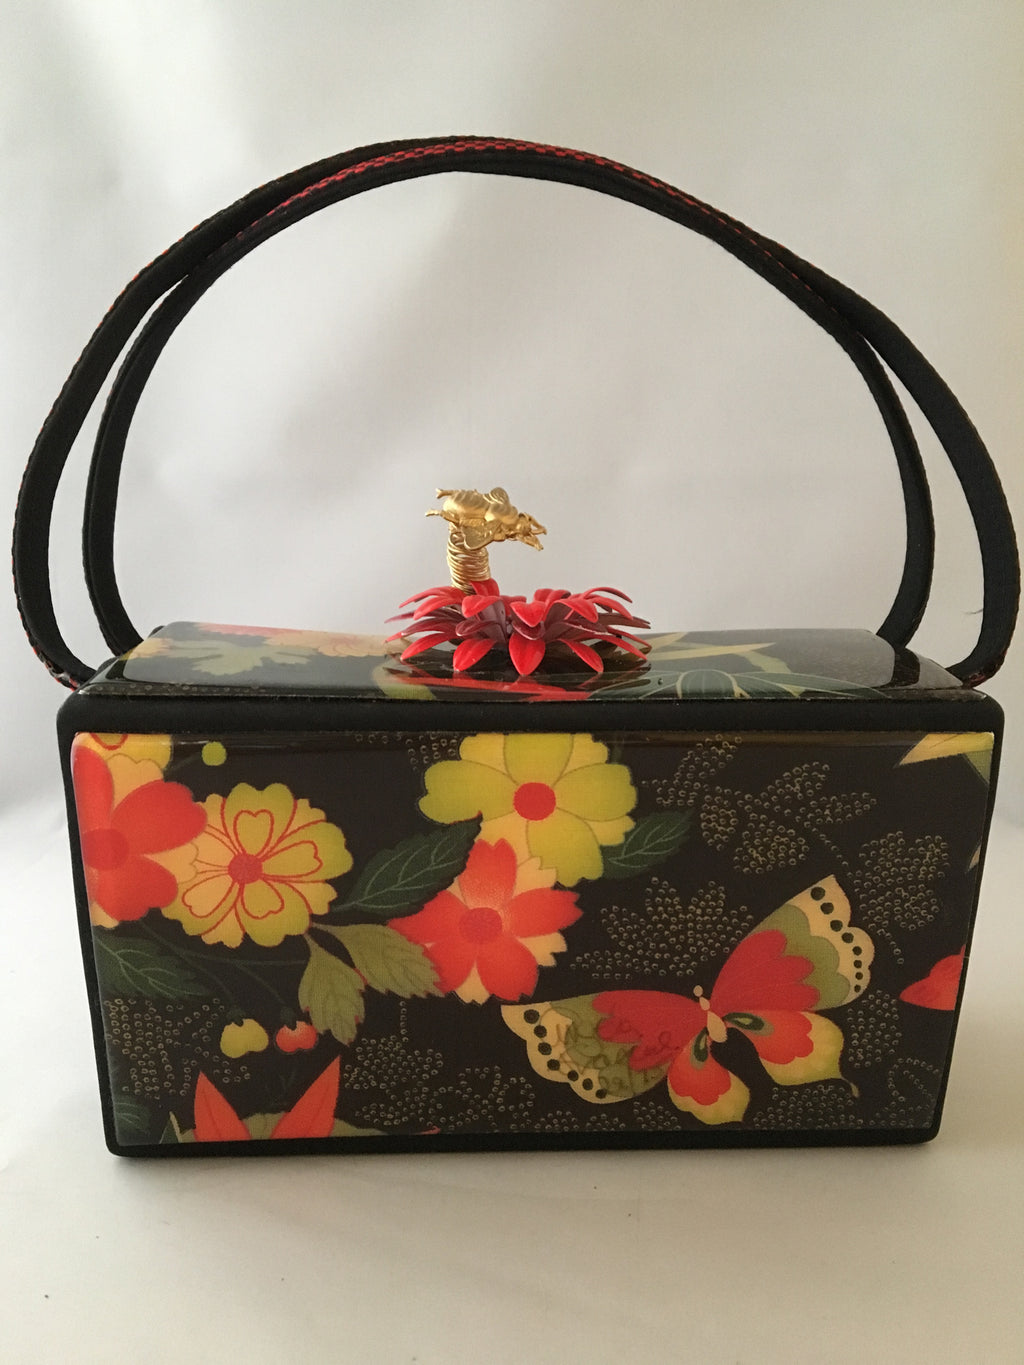 "Vintage box purse with flowers and butterflies. From its cheeky checkerboard handle to its vintage enamel daisy with bouncy pouncy bee, this brilliant handbag will take you from spring through fall. Included are a matching purse for your little girl and her dolly, too!  Dimensions - Height 4.5""; Width 7""; Depth 4.5""; Handle 6"""